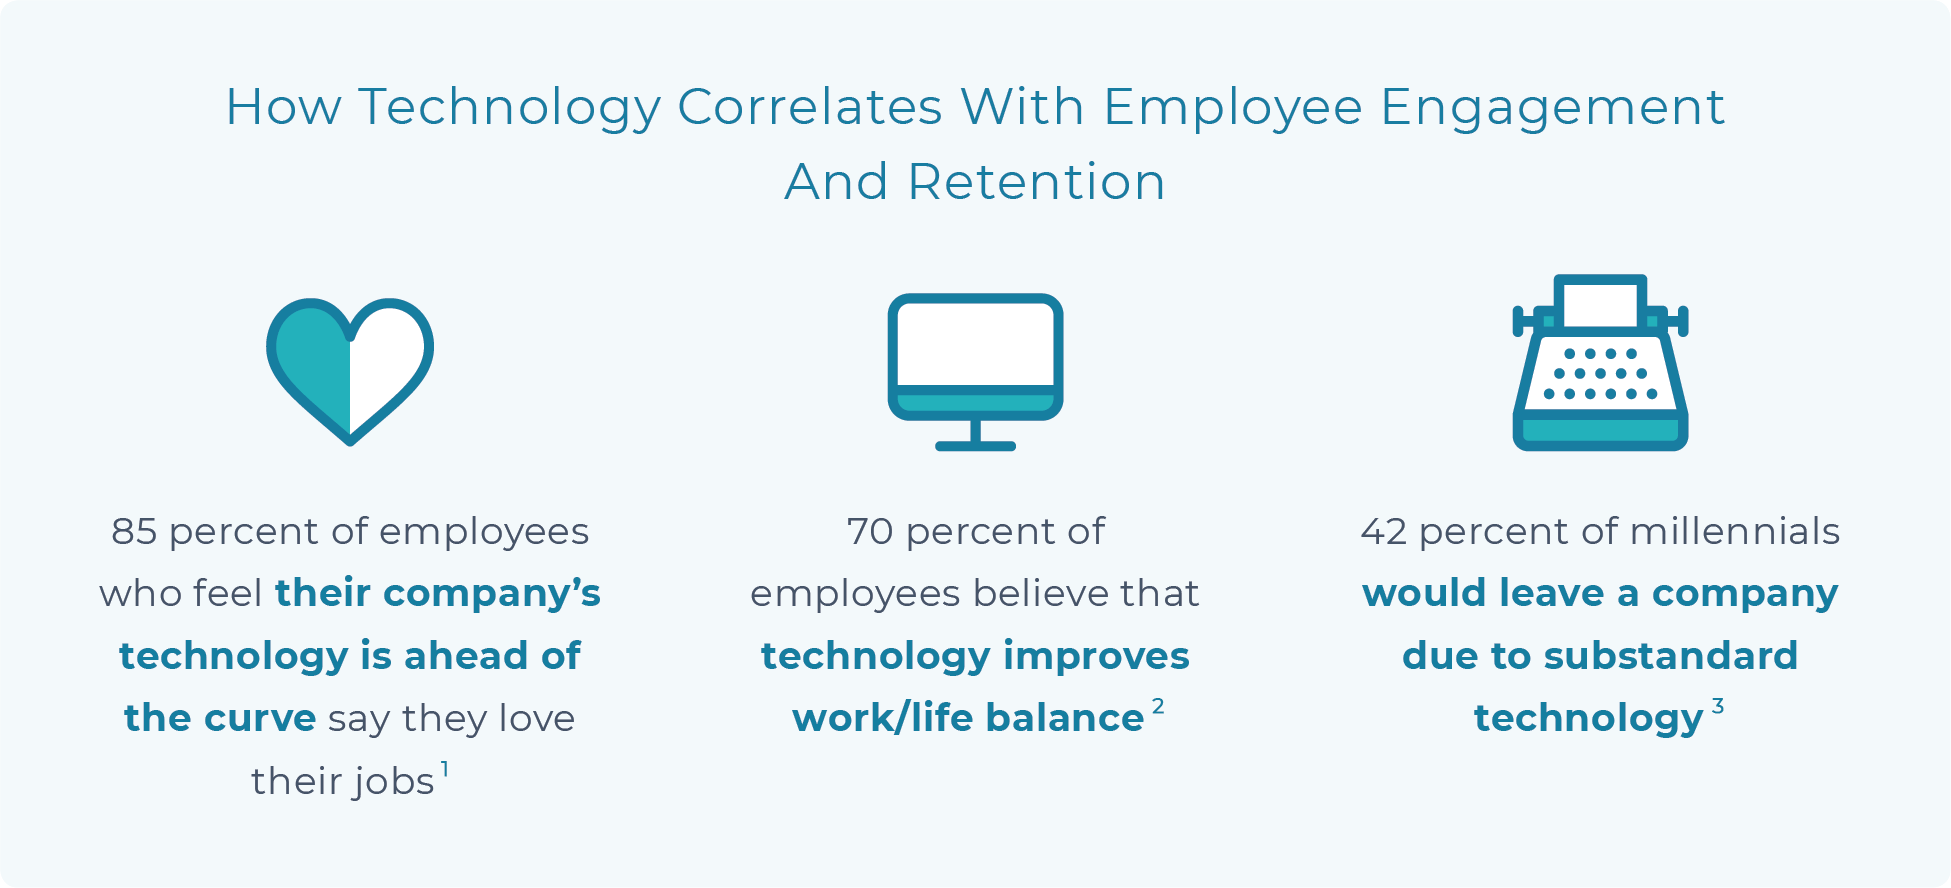 Graphic - How technology correlates with employee engagement and retention